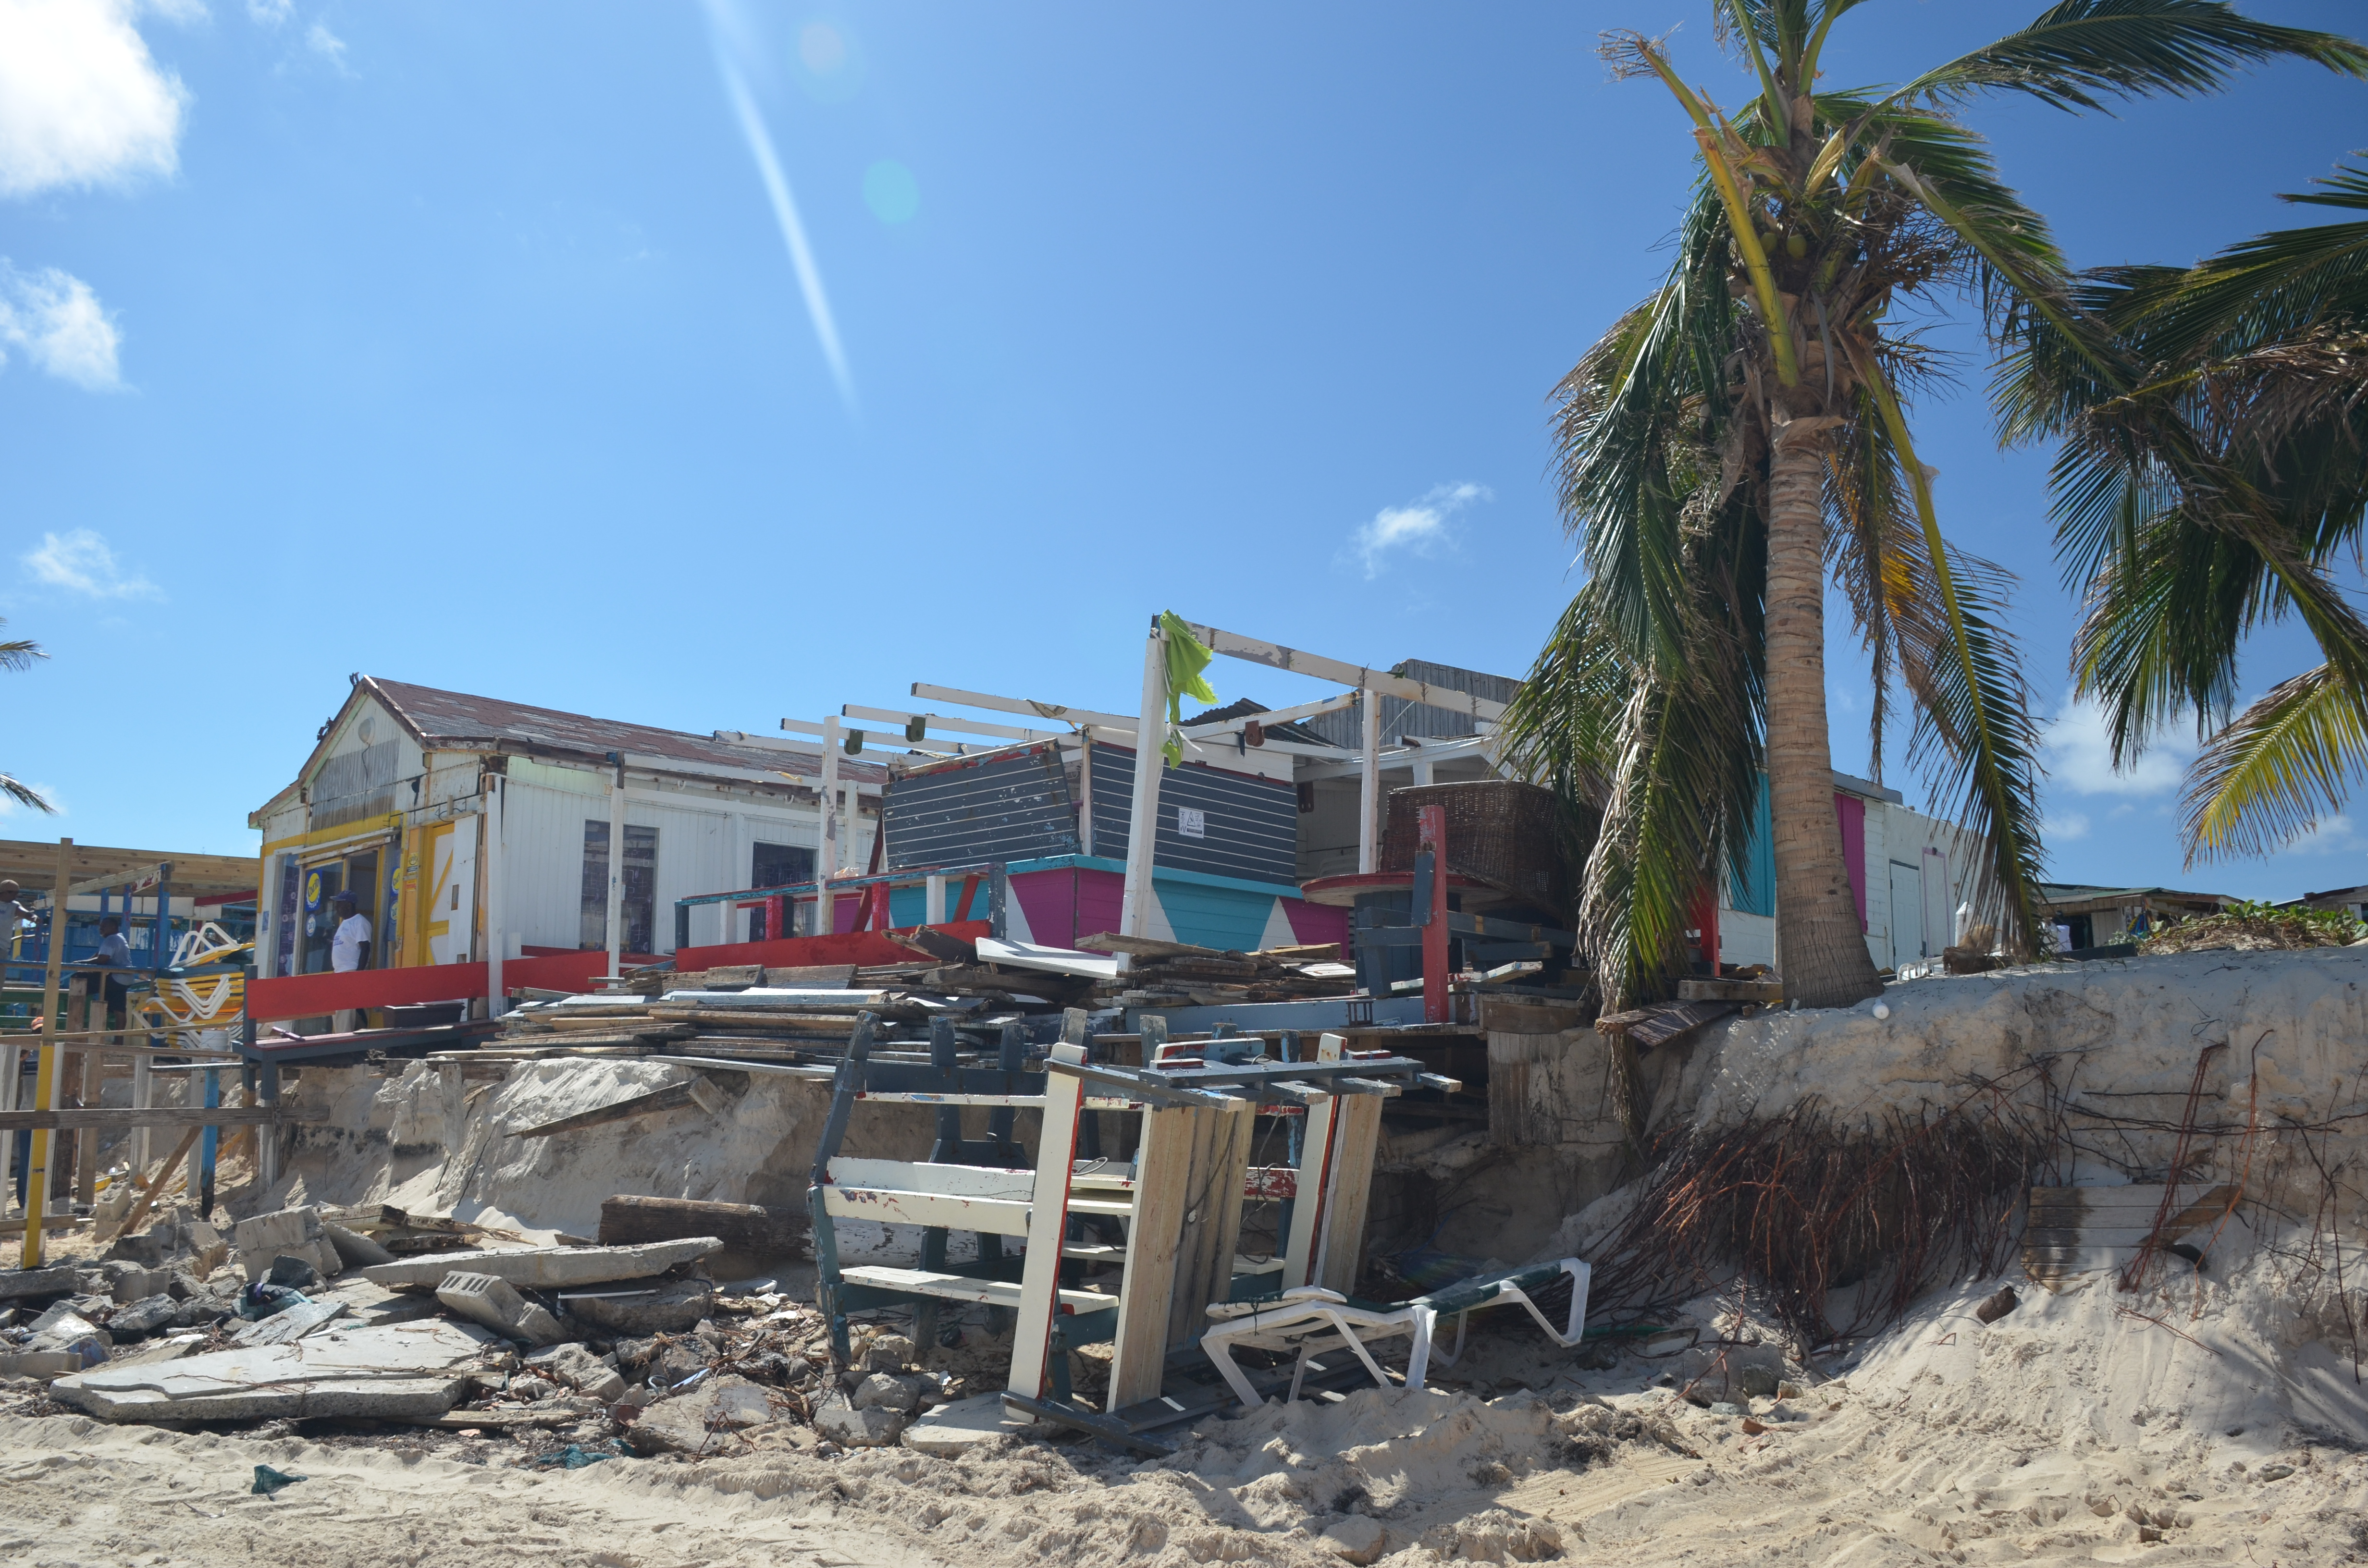 FileOrient Beach After Hurricane Gonzalo St Martin